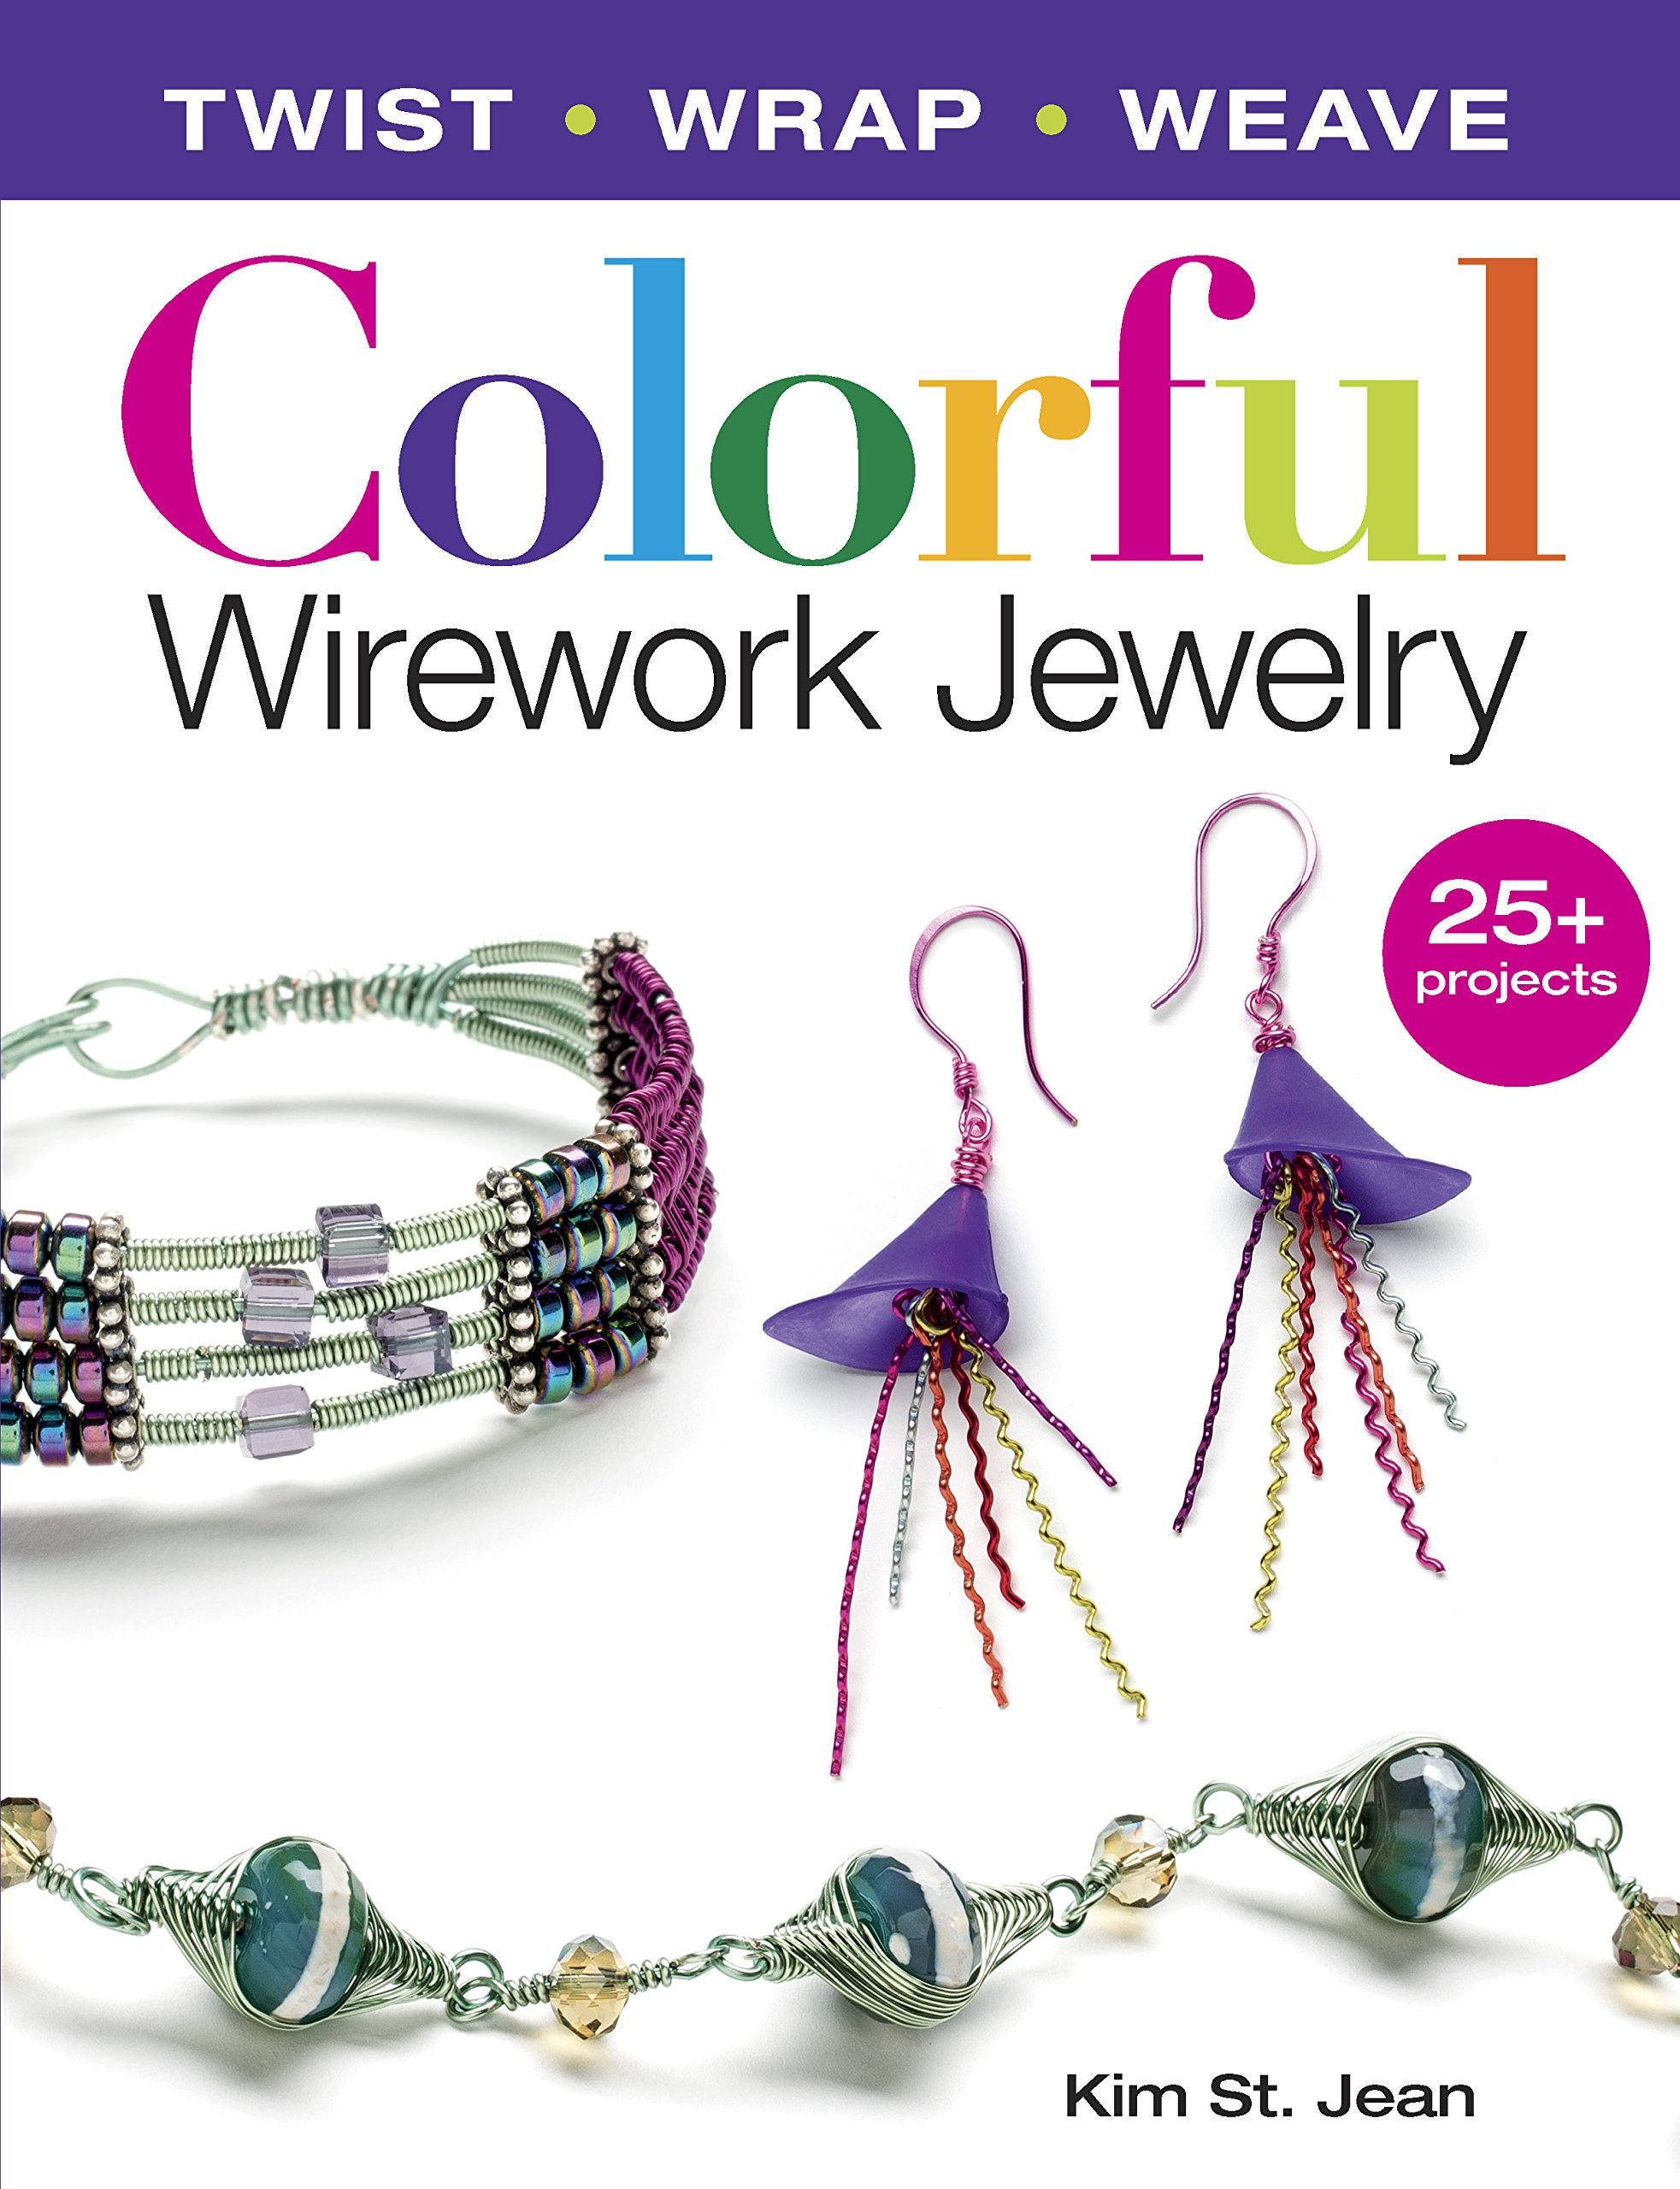 colorful-wirework-jewelry-twist-wrap-weave